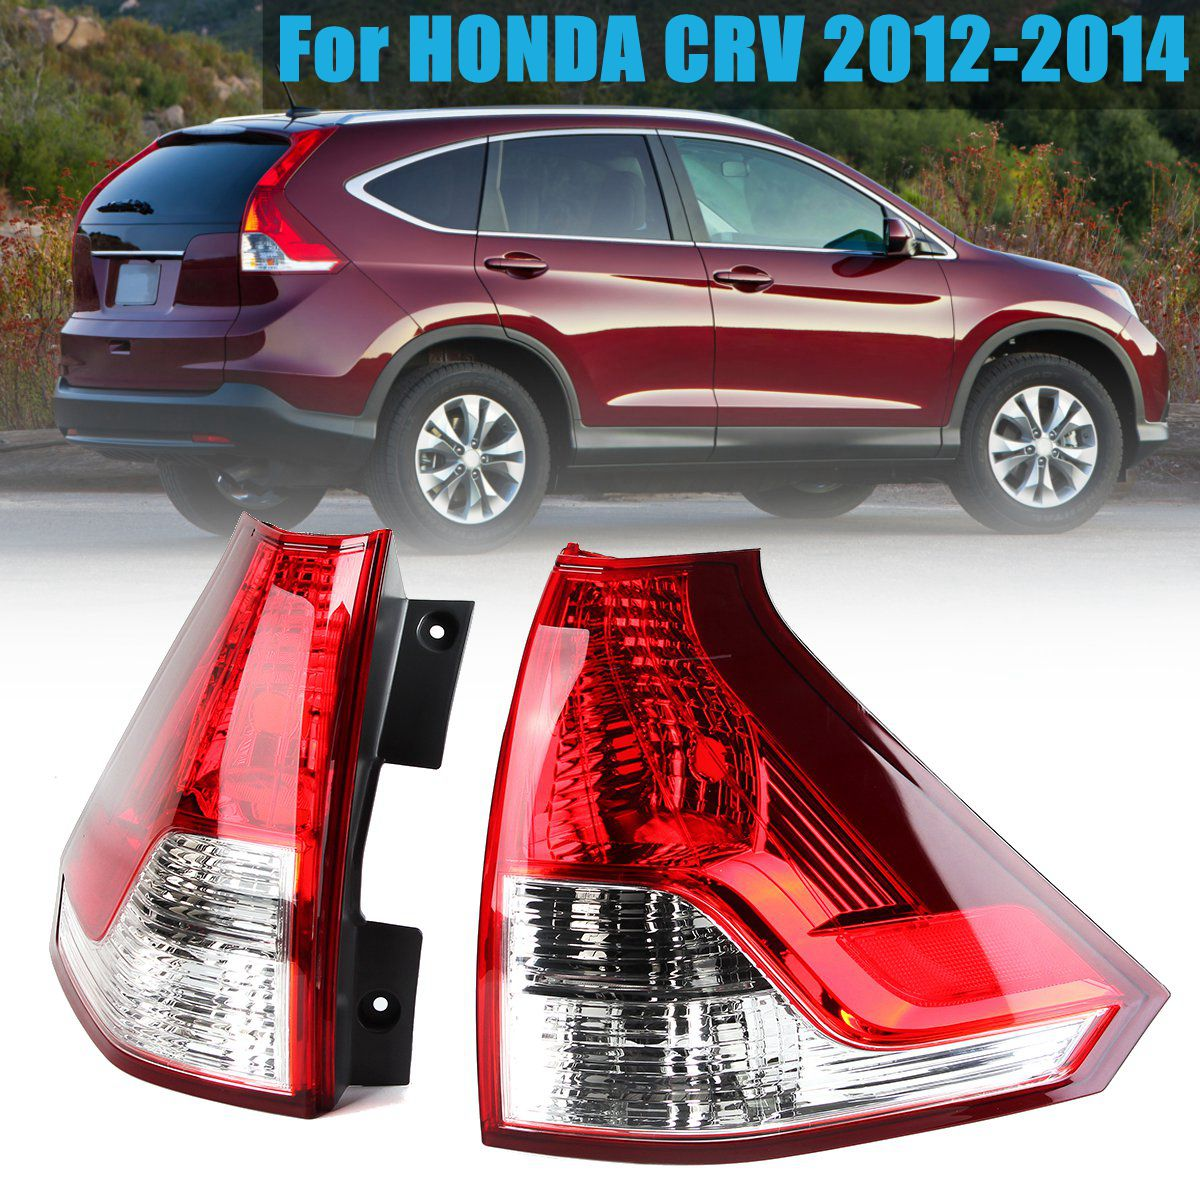 Tail Light Clear Red Left/Right Tail Rear Bumper Light LED Brake Light Tail Lamp for Honda CRV 2012 2013 2014